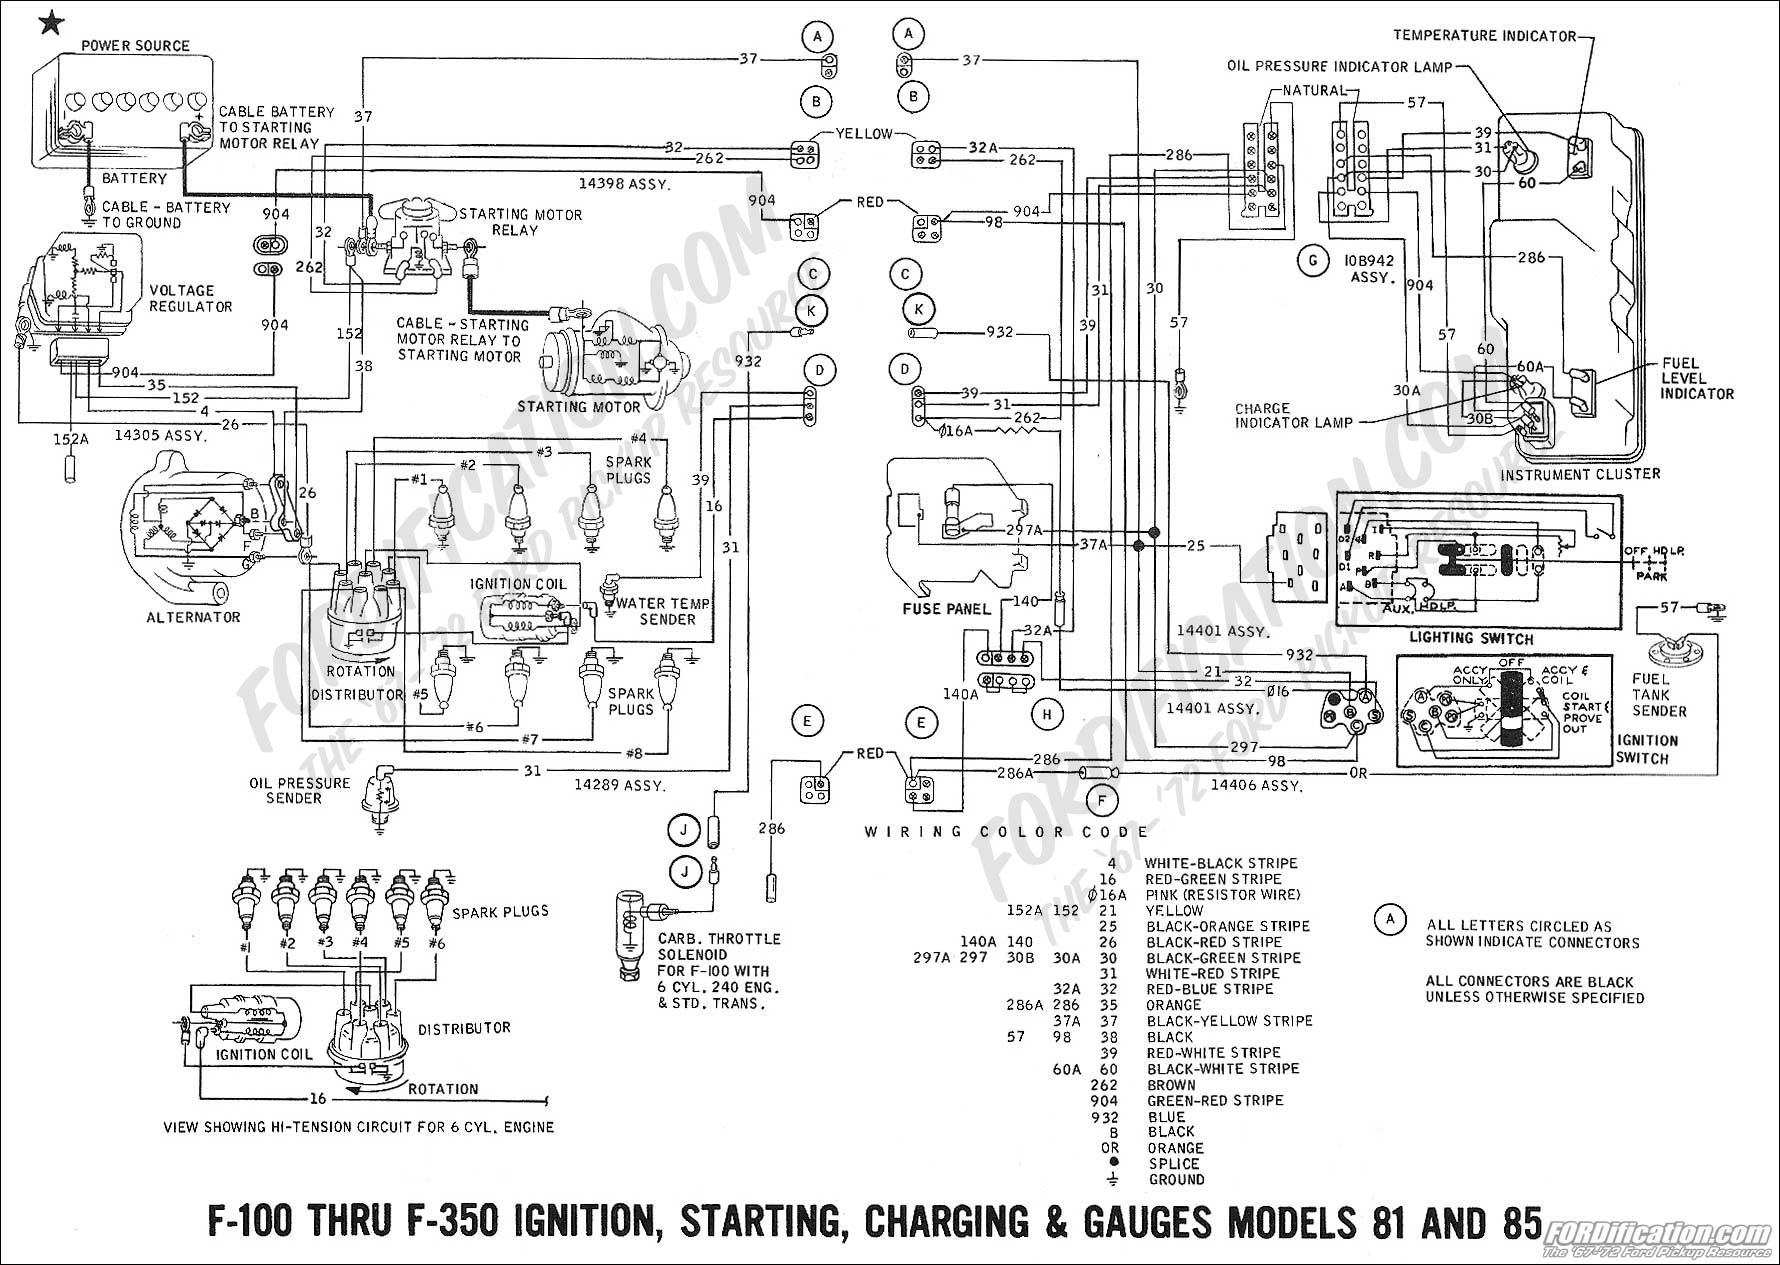 hight resolution of 1969 ford f100 wiring diagram wiring diagram name 1969 ford mustang ignition switch wiring diagram 1969 ford ignition switch diagram